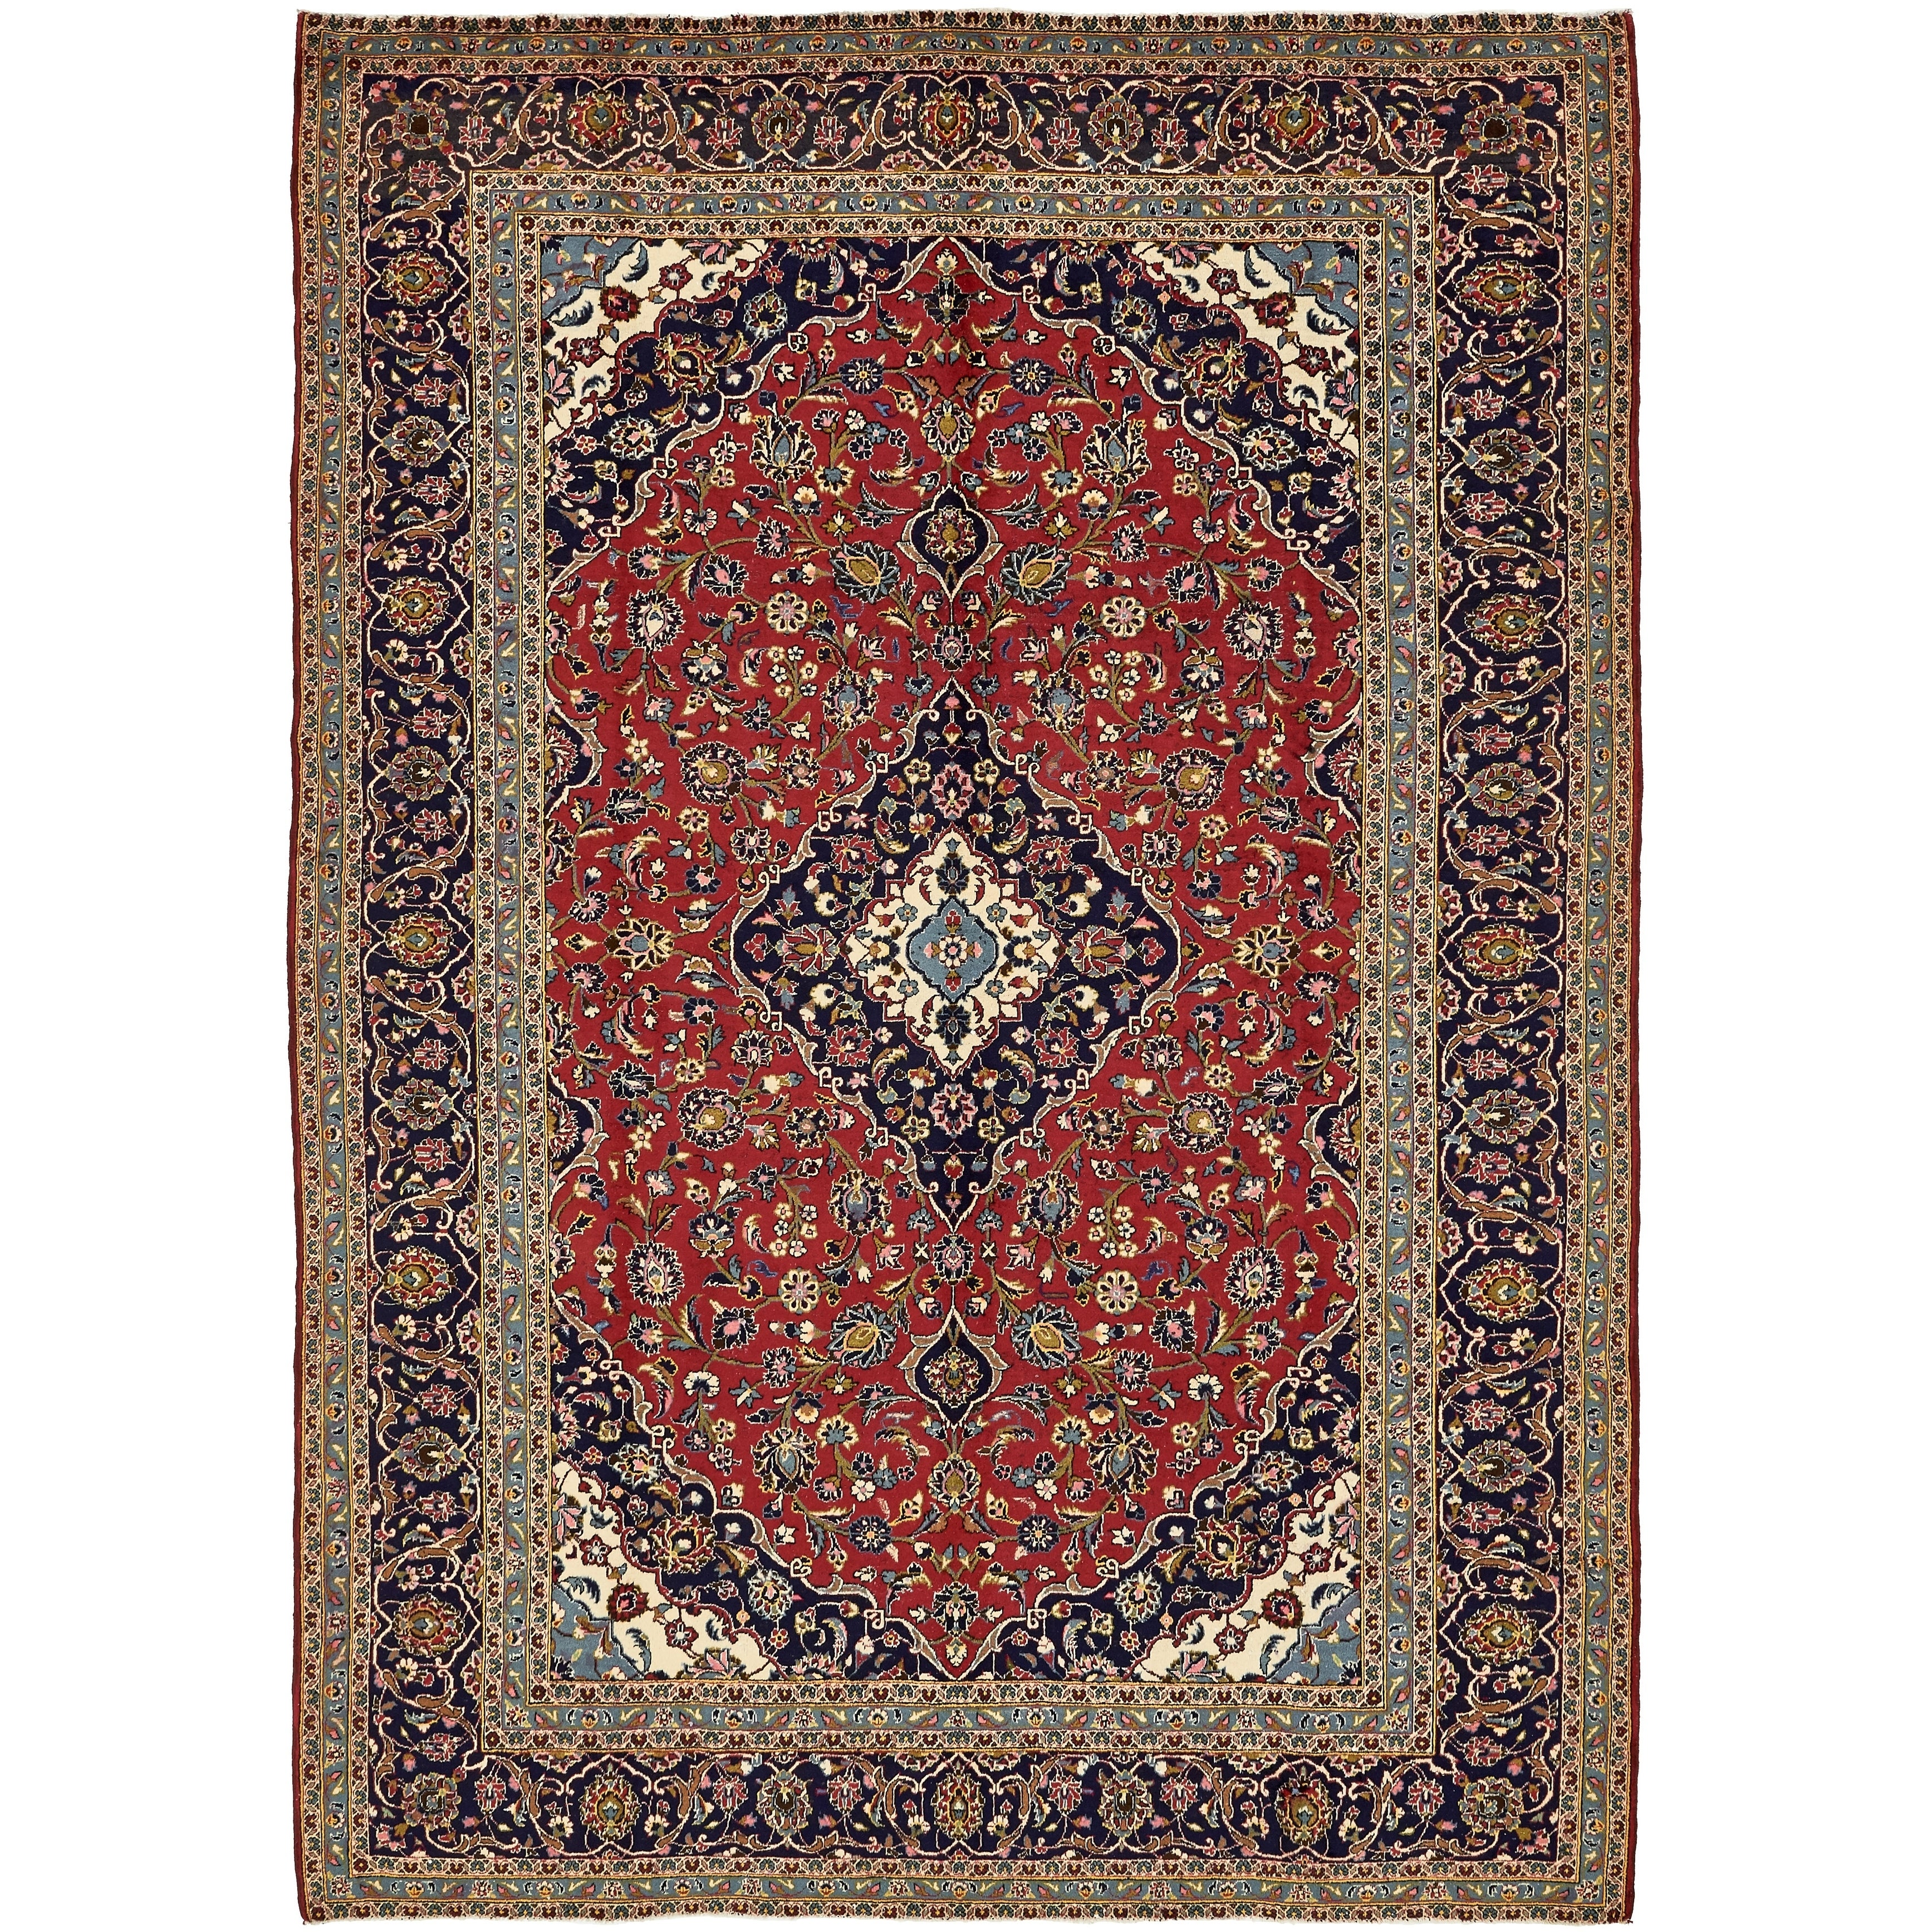 Hand Knotted Kashan Semi Antique Wool Area Rug - 9' 6 x 13' 4 (Red - 9' 6 x 13' 4)